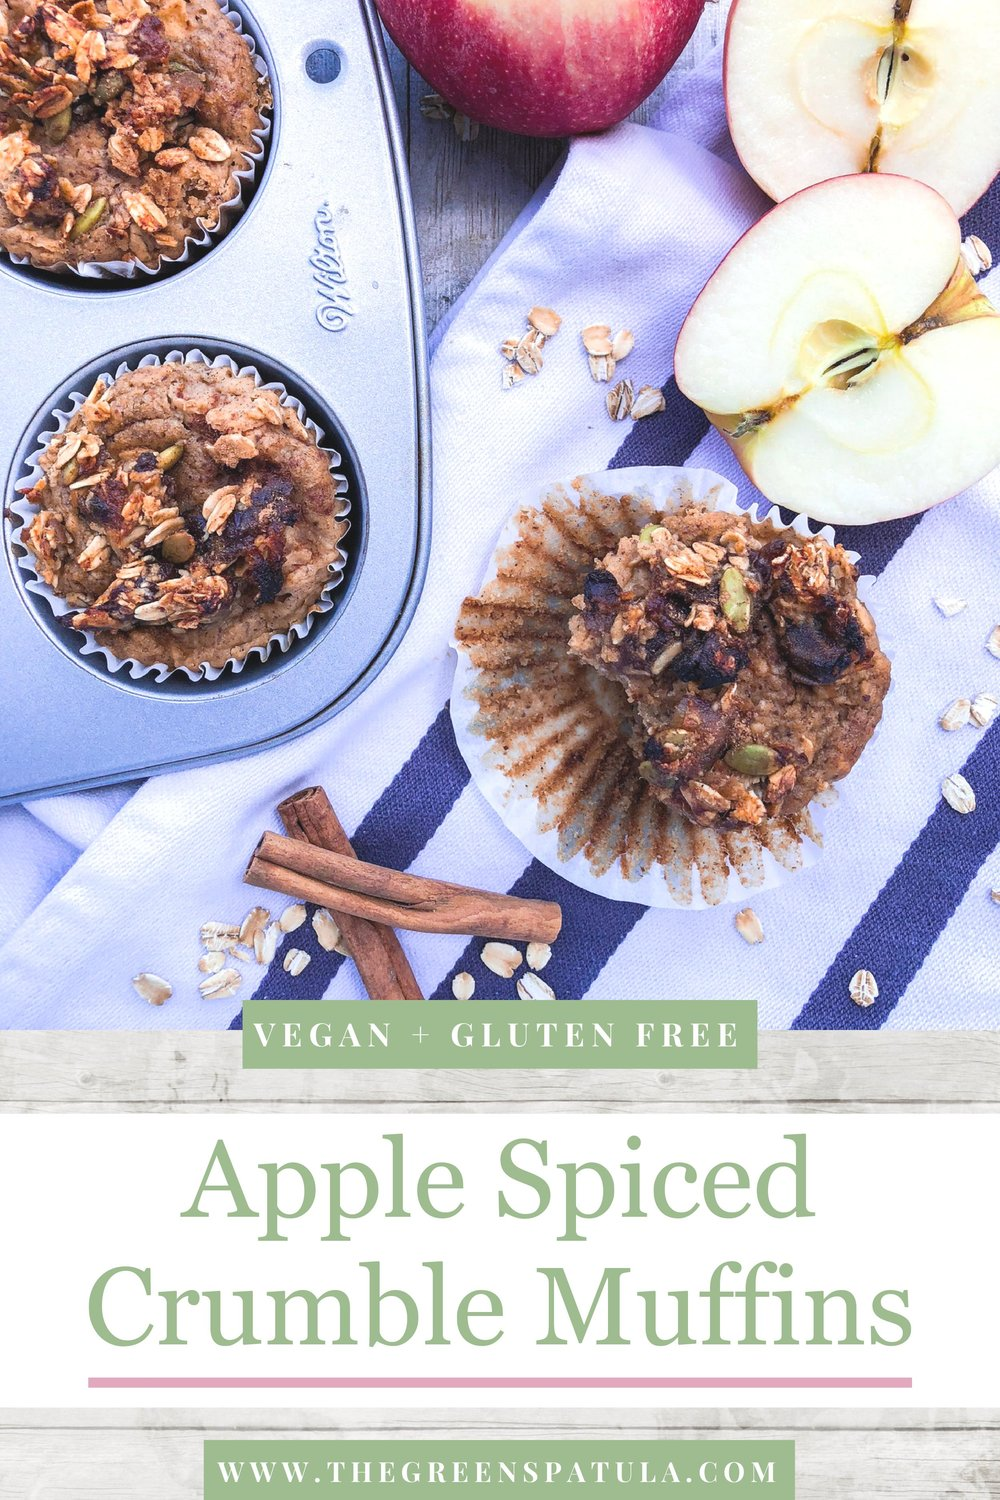 These Apple Spiced Crumble Muffins are perfect for the fall season. They are filled with autumn flavors like crisp apples, pumpkin spice, oats, and cinnamon. These muffins are easy to make, kid friendly, and delicious! Great for any bake sale, Thanksgiving Dinner, or even a quick and easy breakfast. Using all real and natural ingredients, these muffins are oil-free, vegan, gluten free, and refined sugar free. #vegan #falldesserts #cleaneating #oilfree #glutenfree #healthydessert #pumpkinspice #applepicking